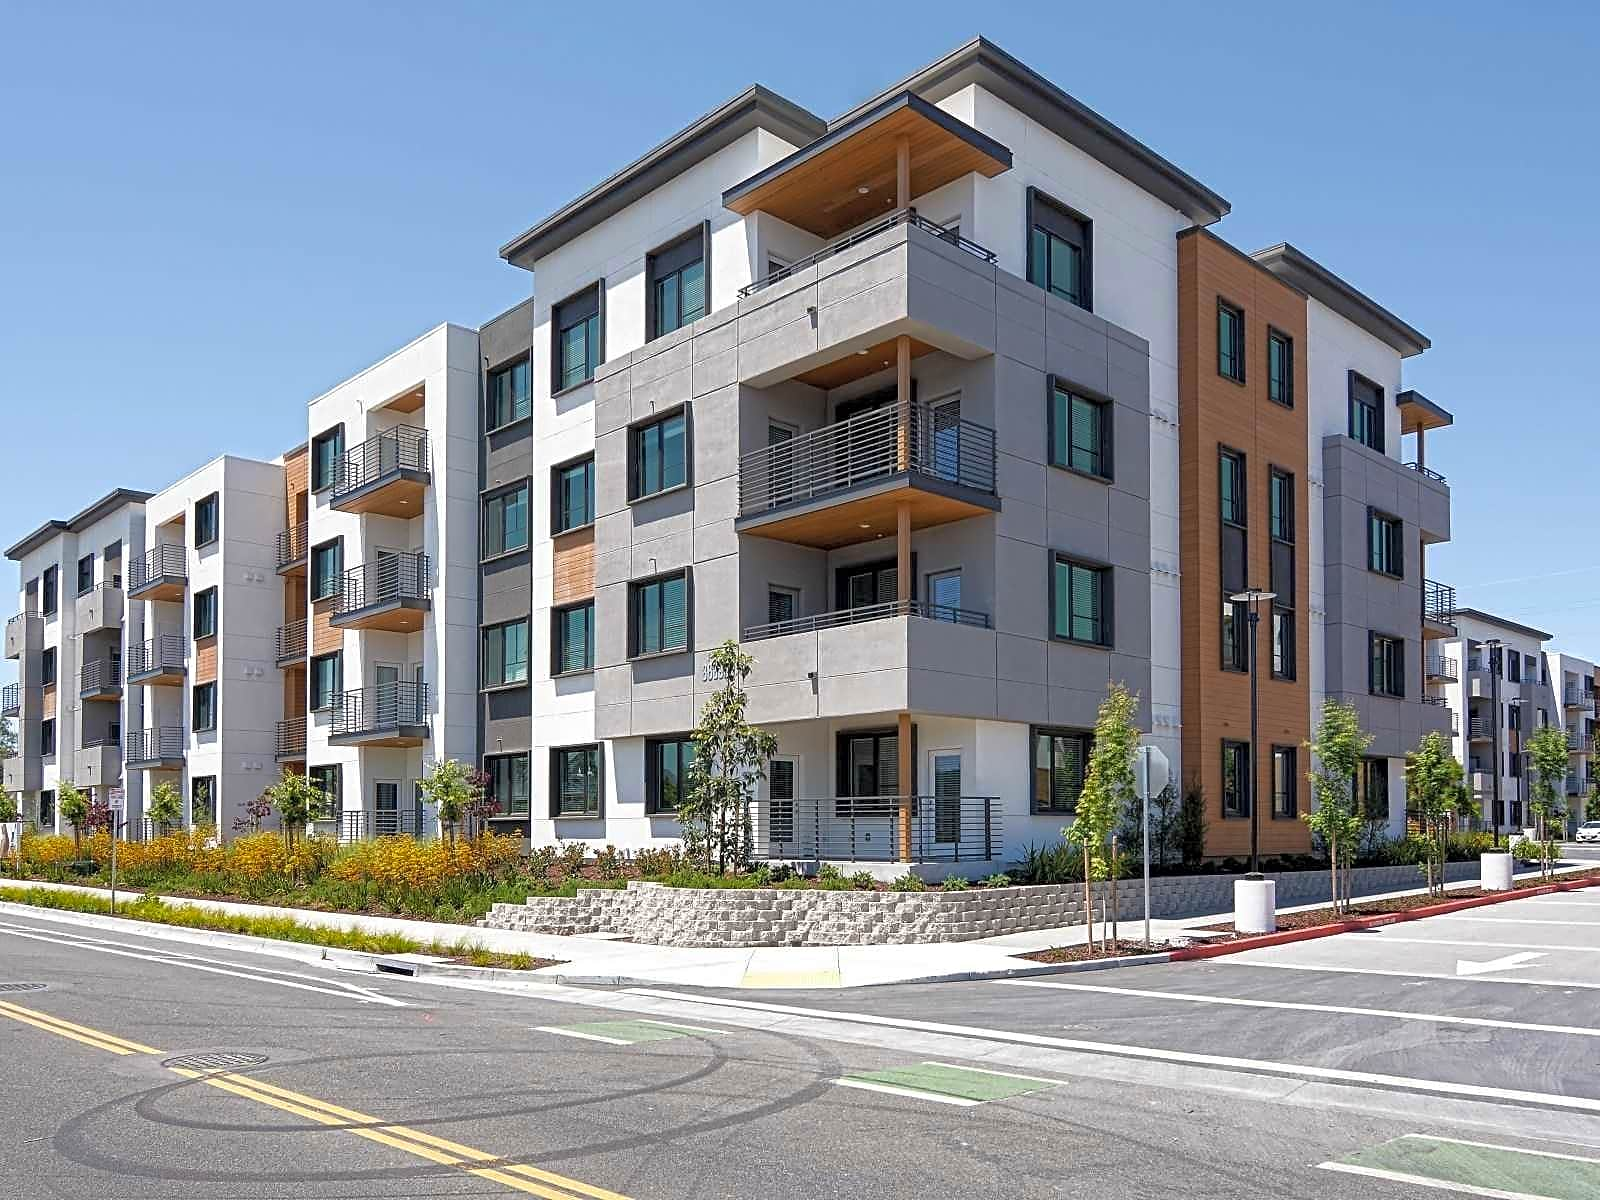 Apartments Near Stanford Anton Menlo for Stanford University Students in Stanford, CA